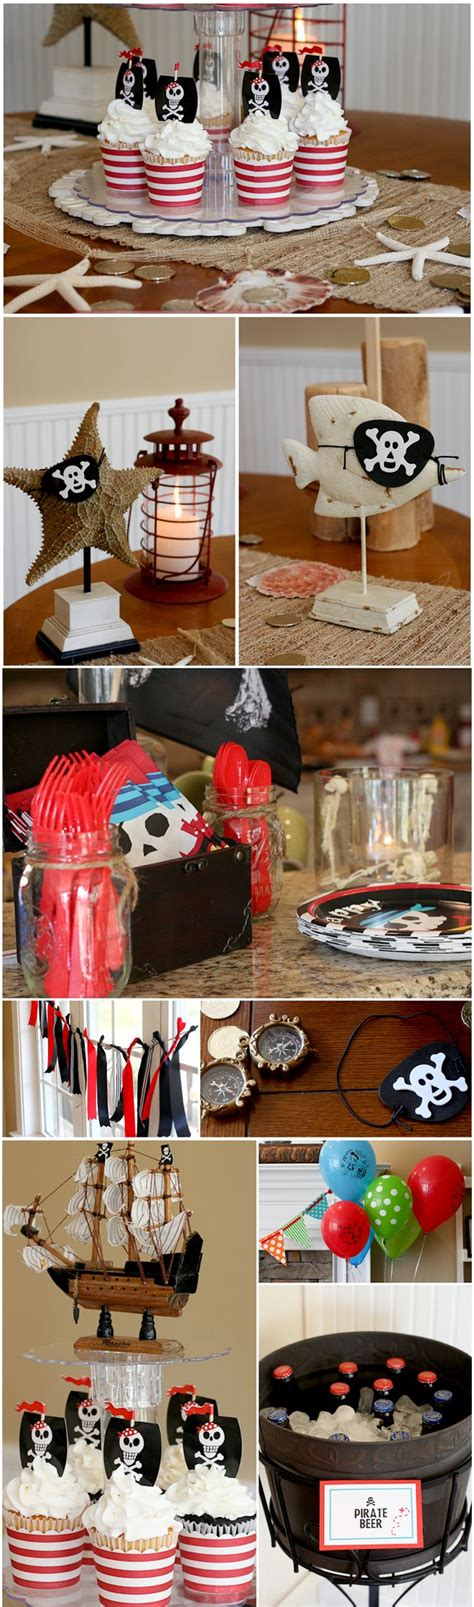 Southern Blue Celebrations Pirate Party Ideas